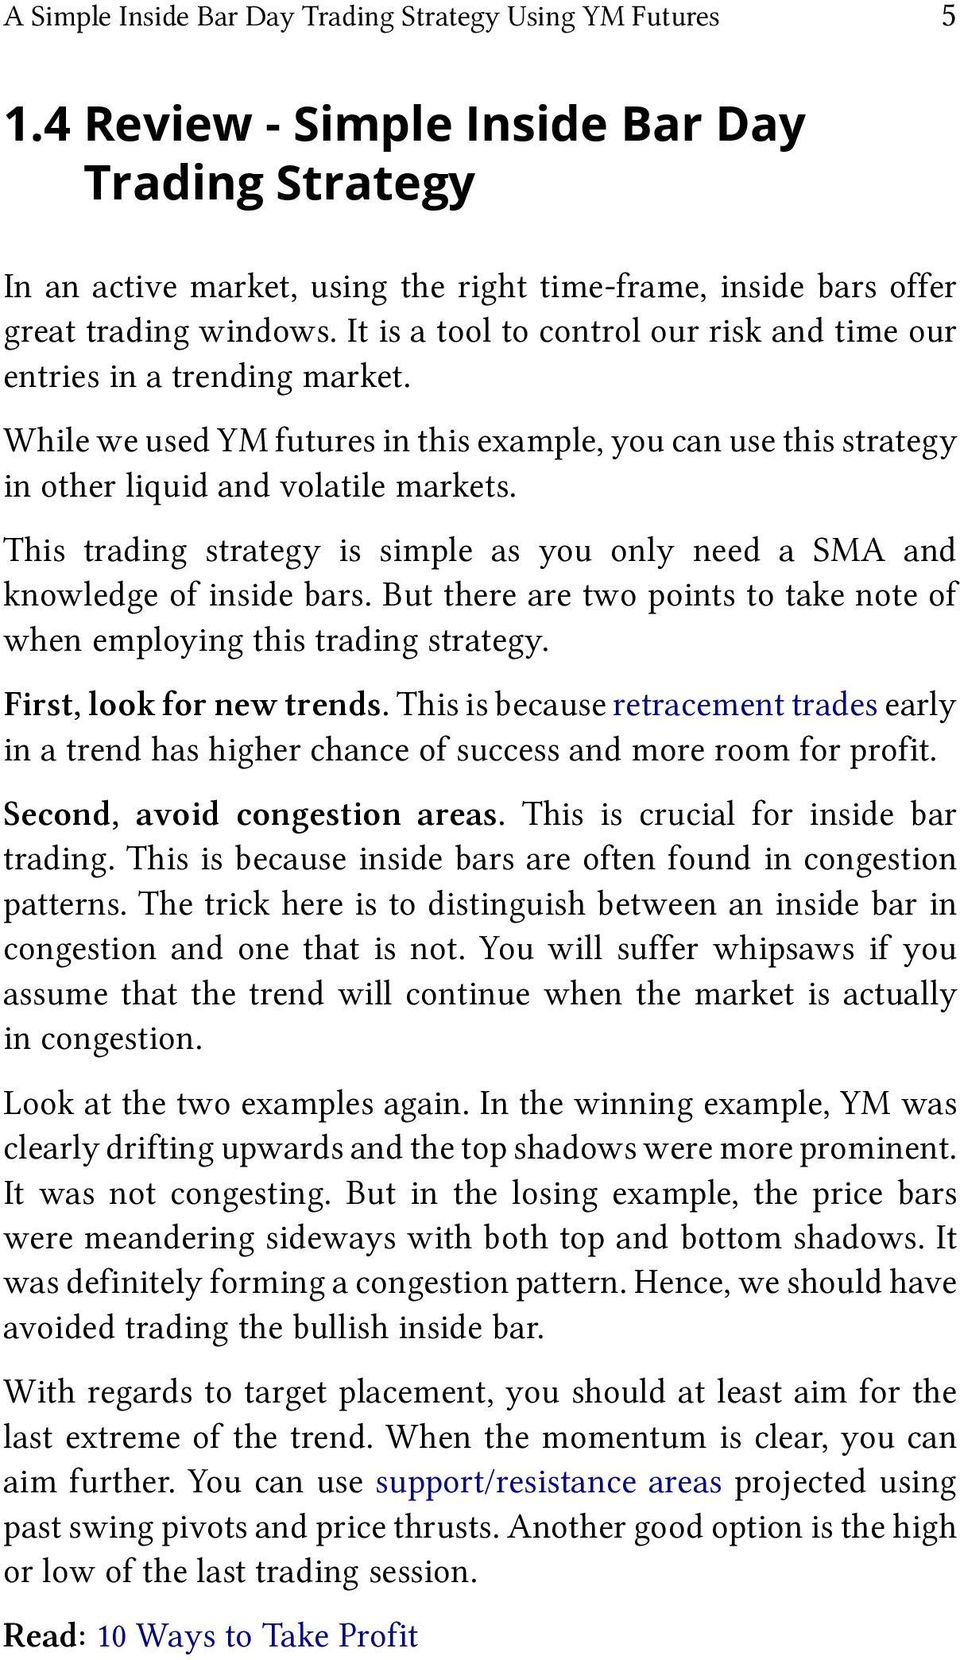 How to Trade with Price Action (Strategies) - PDF